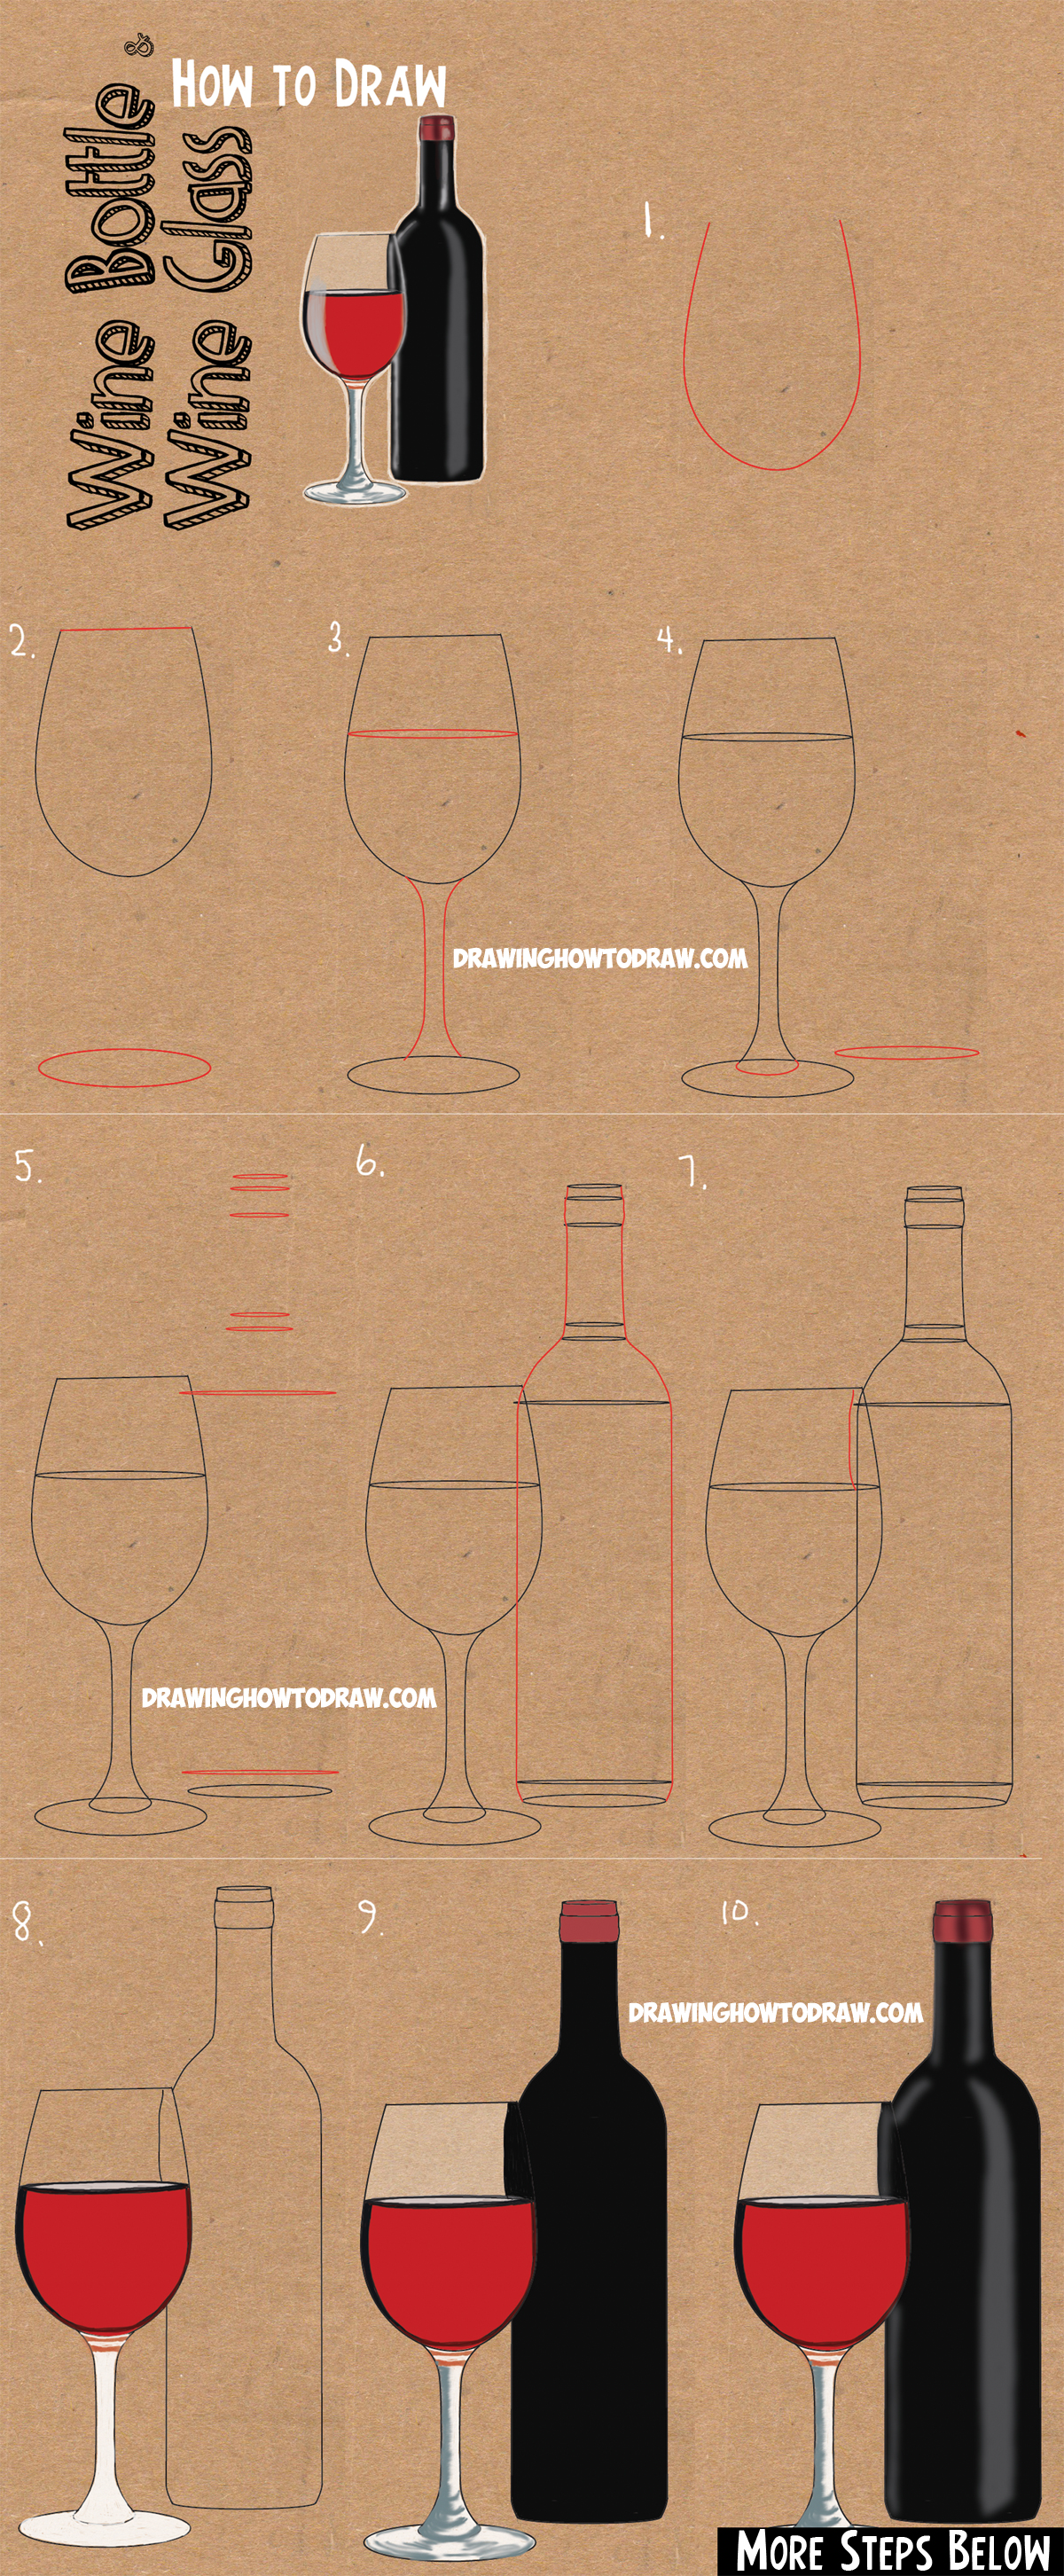 How To Draw A Bottle And Glasses Of Wine Drawing Tutorial